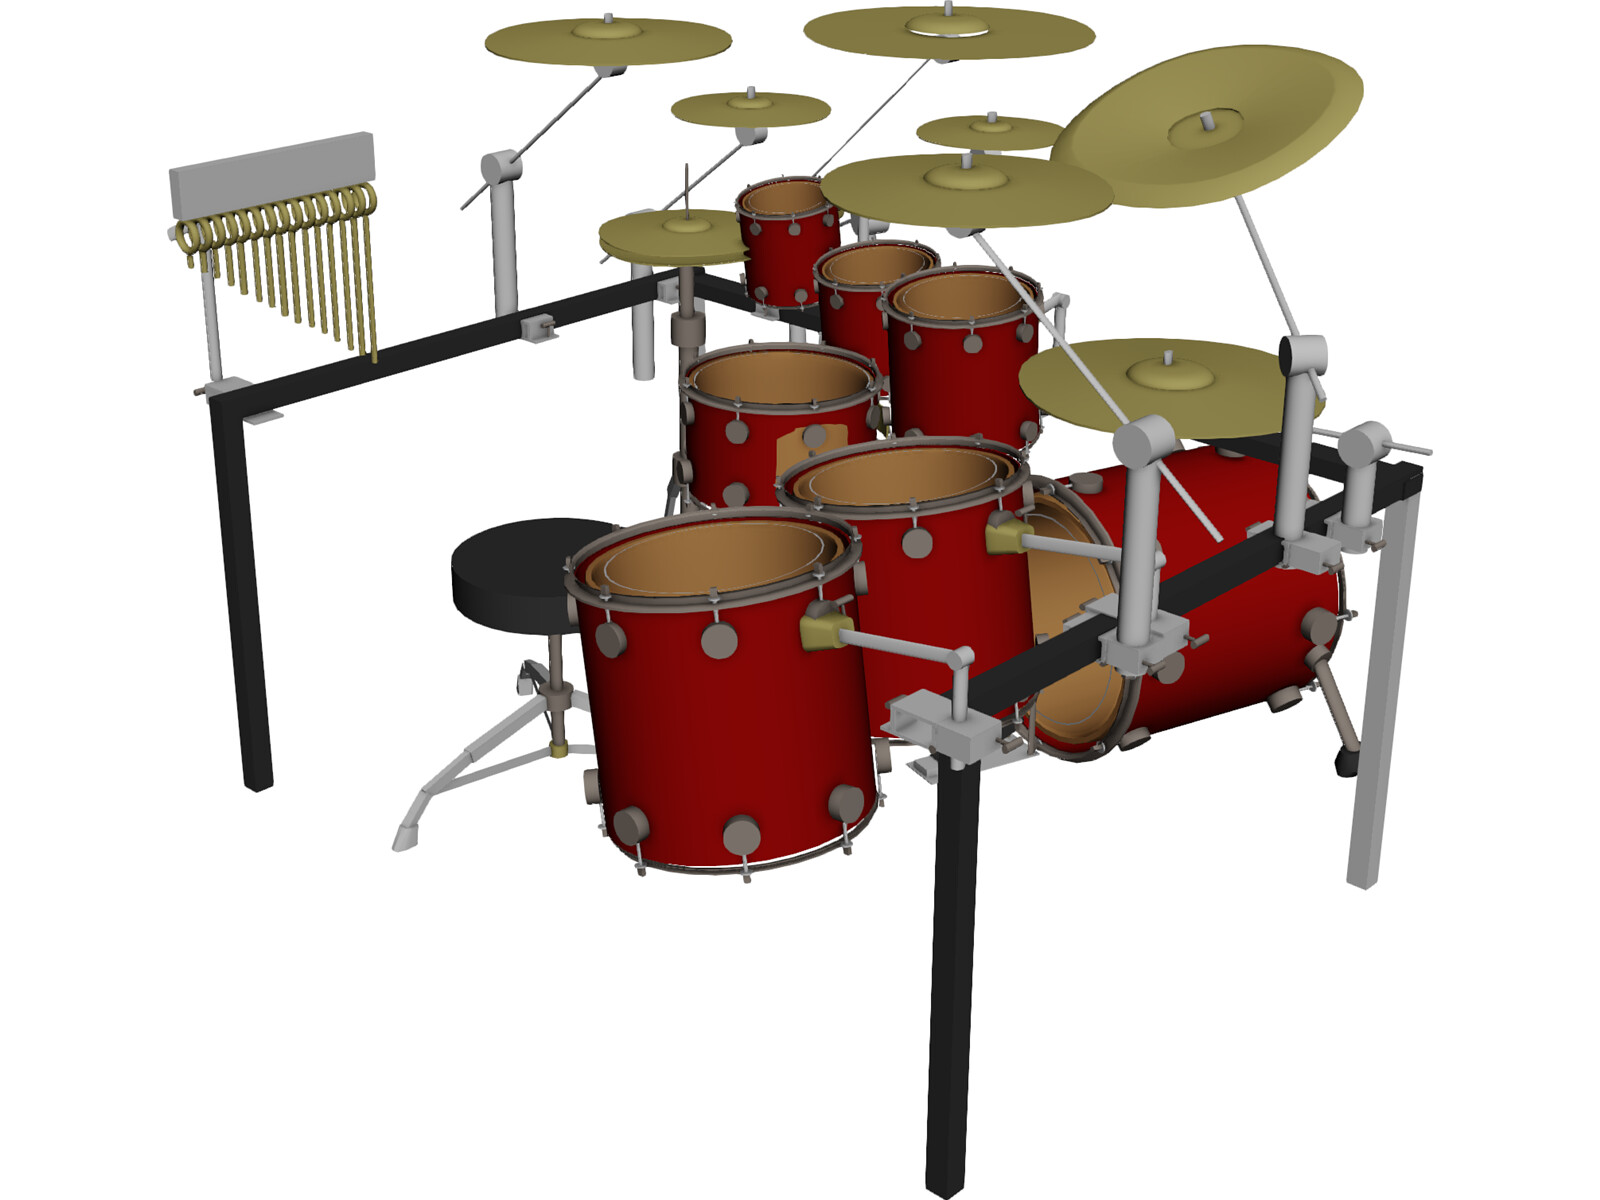 5 Free Software to Play Drums on PC